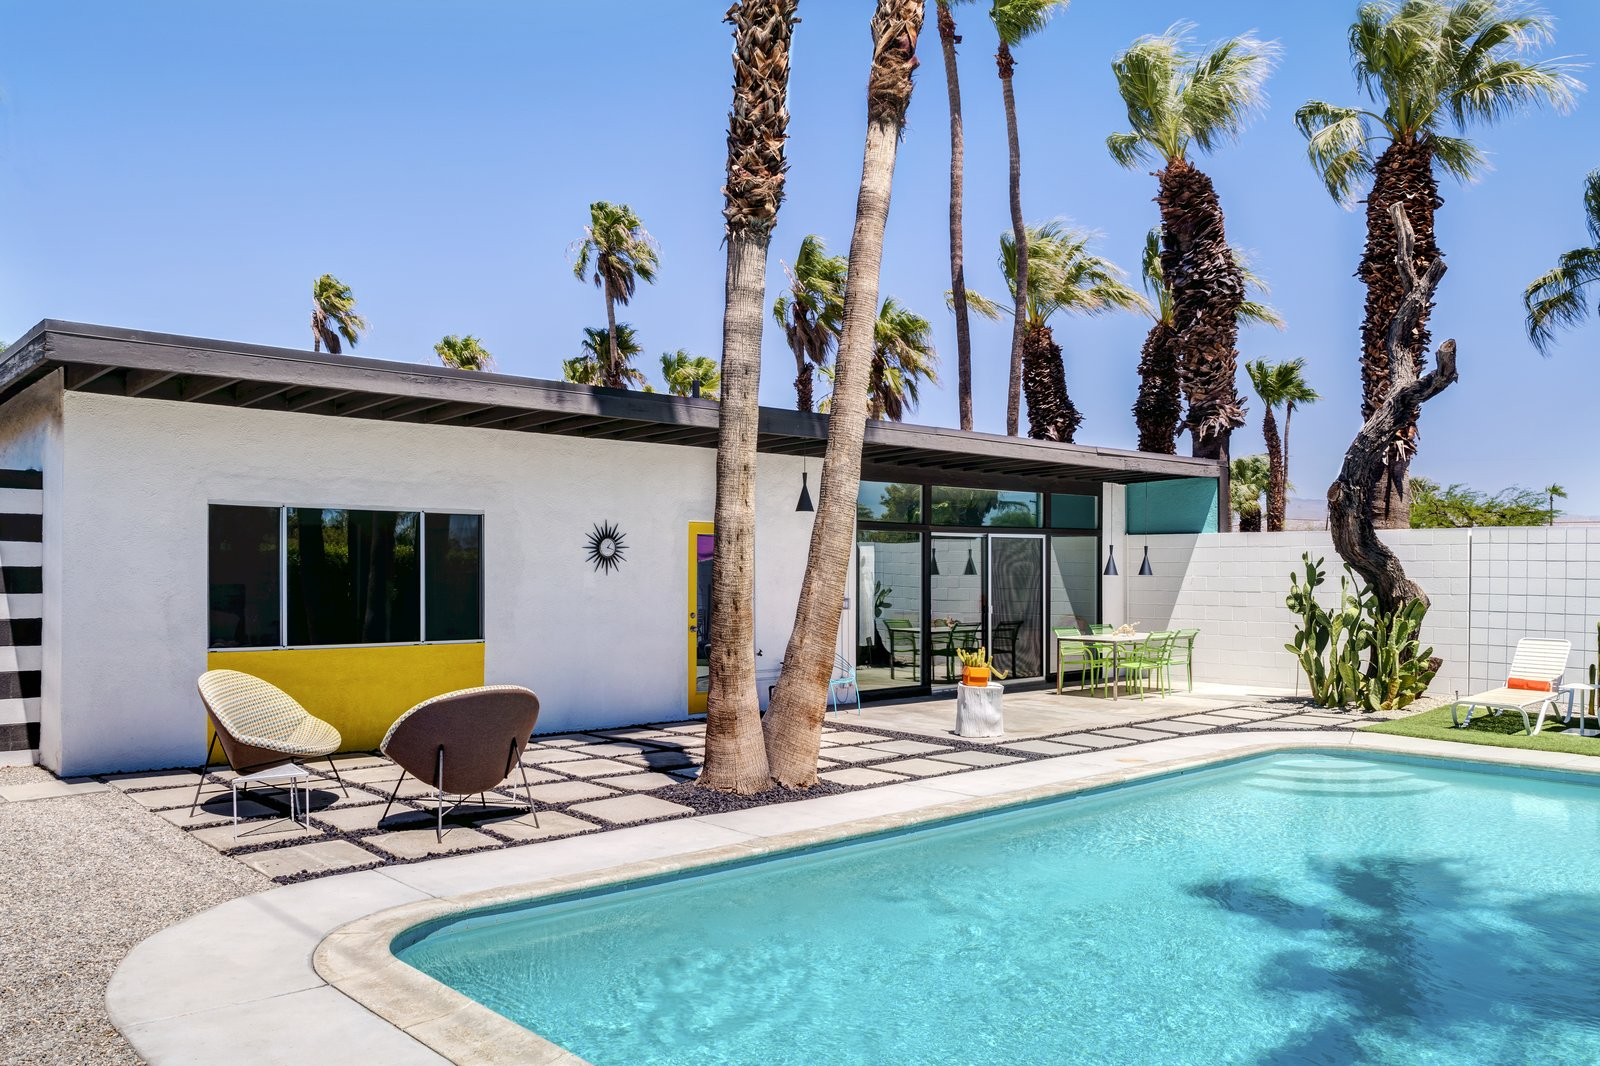 A Donald Wexler-Designed Midcentury Home in Palm Springs Asks $599K - Photo 10 of 11